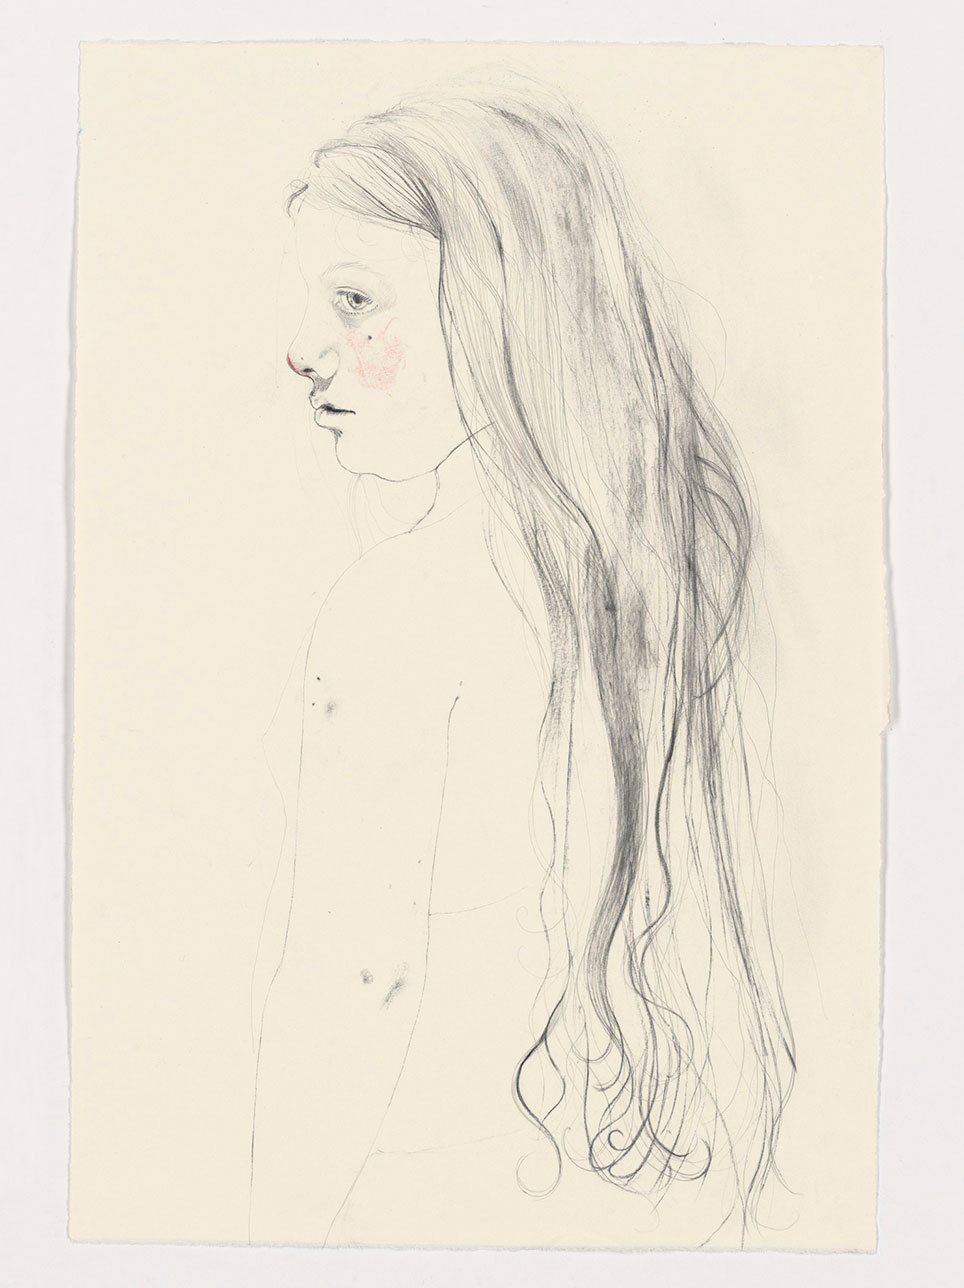 Ishbel Myerscough: 'Girl'.